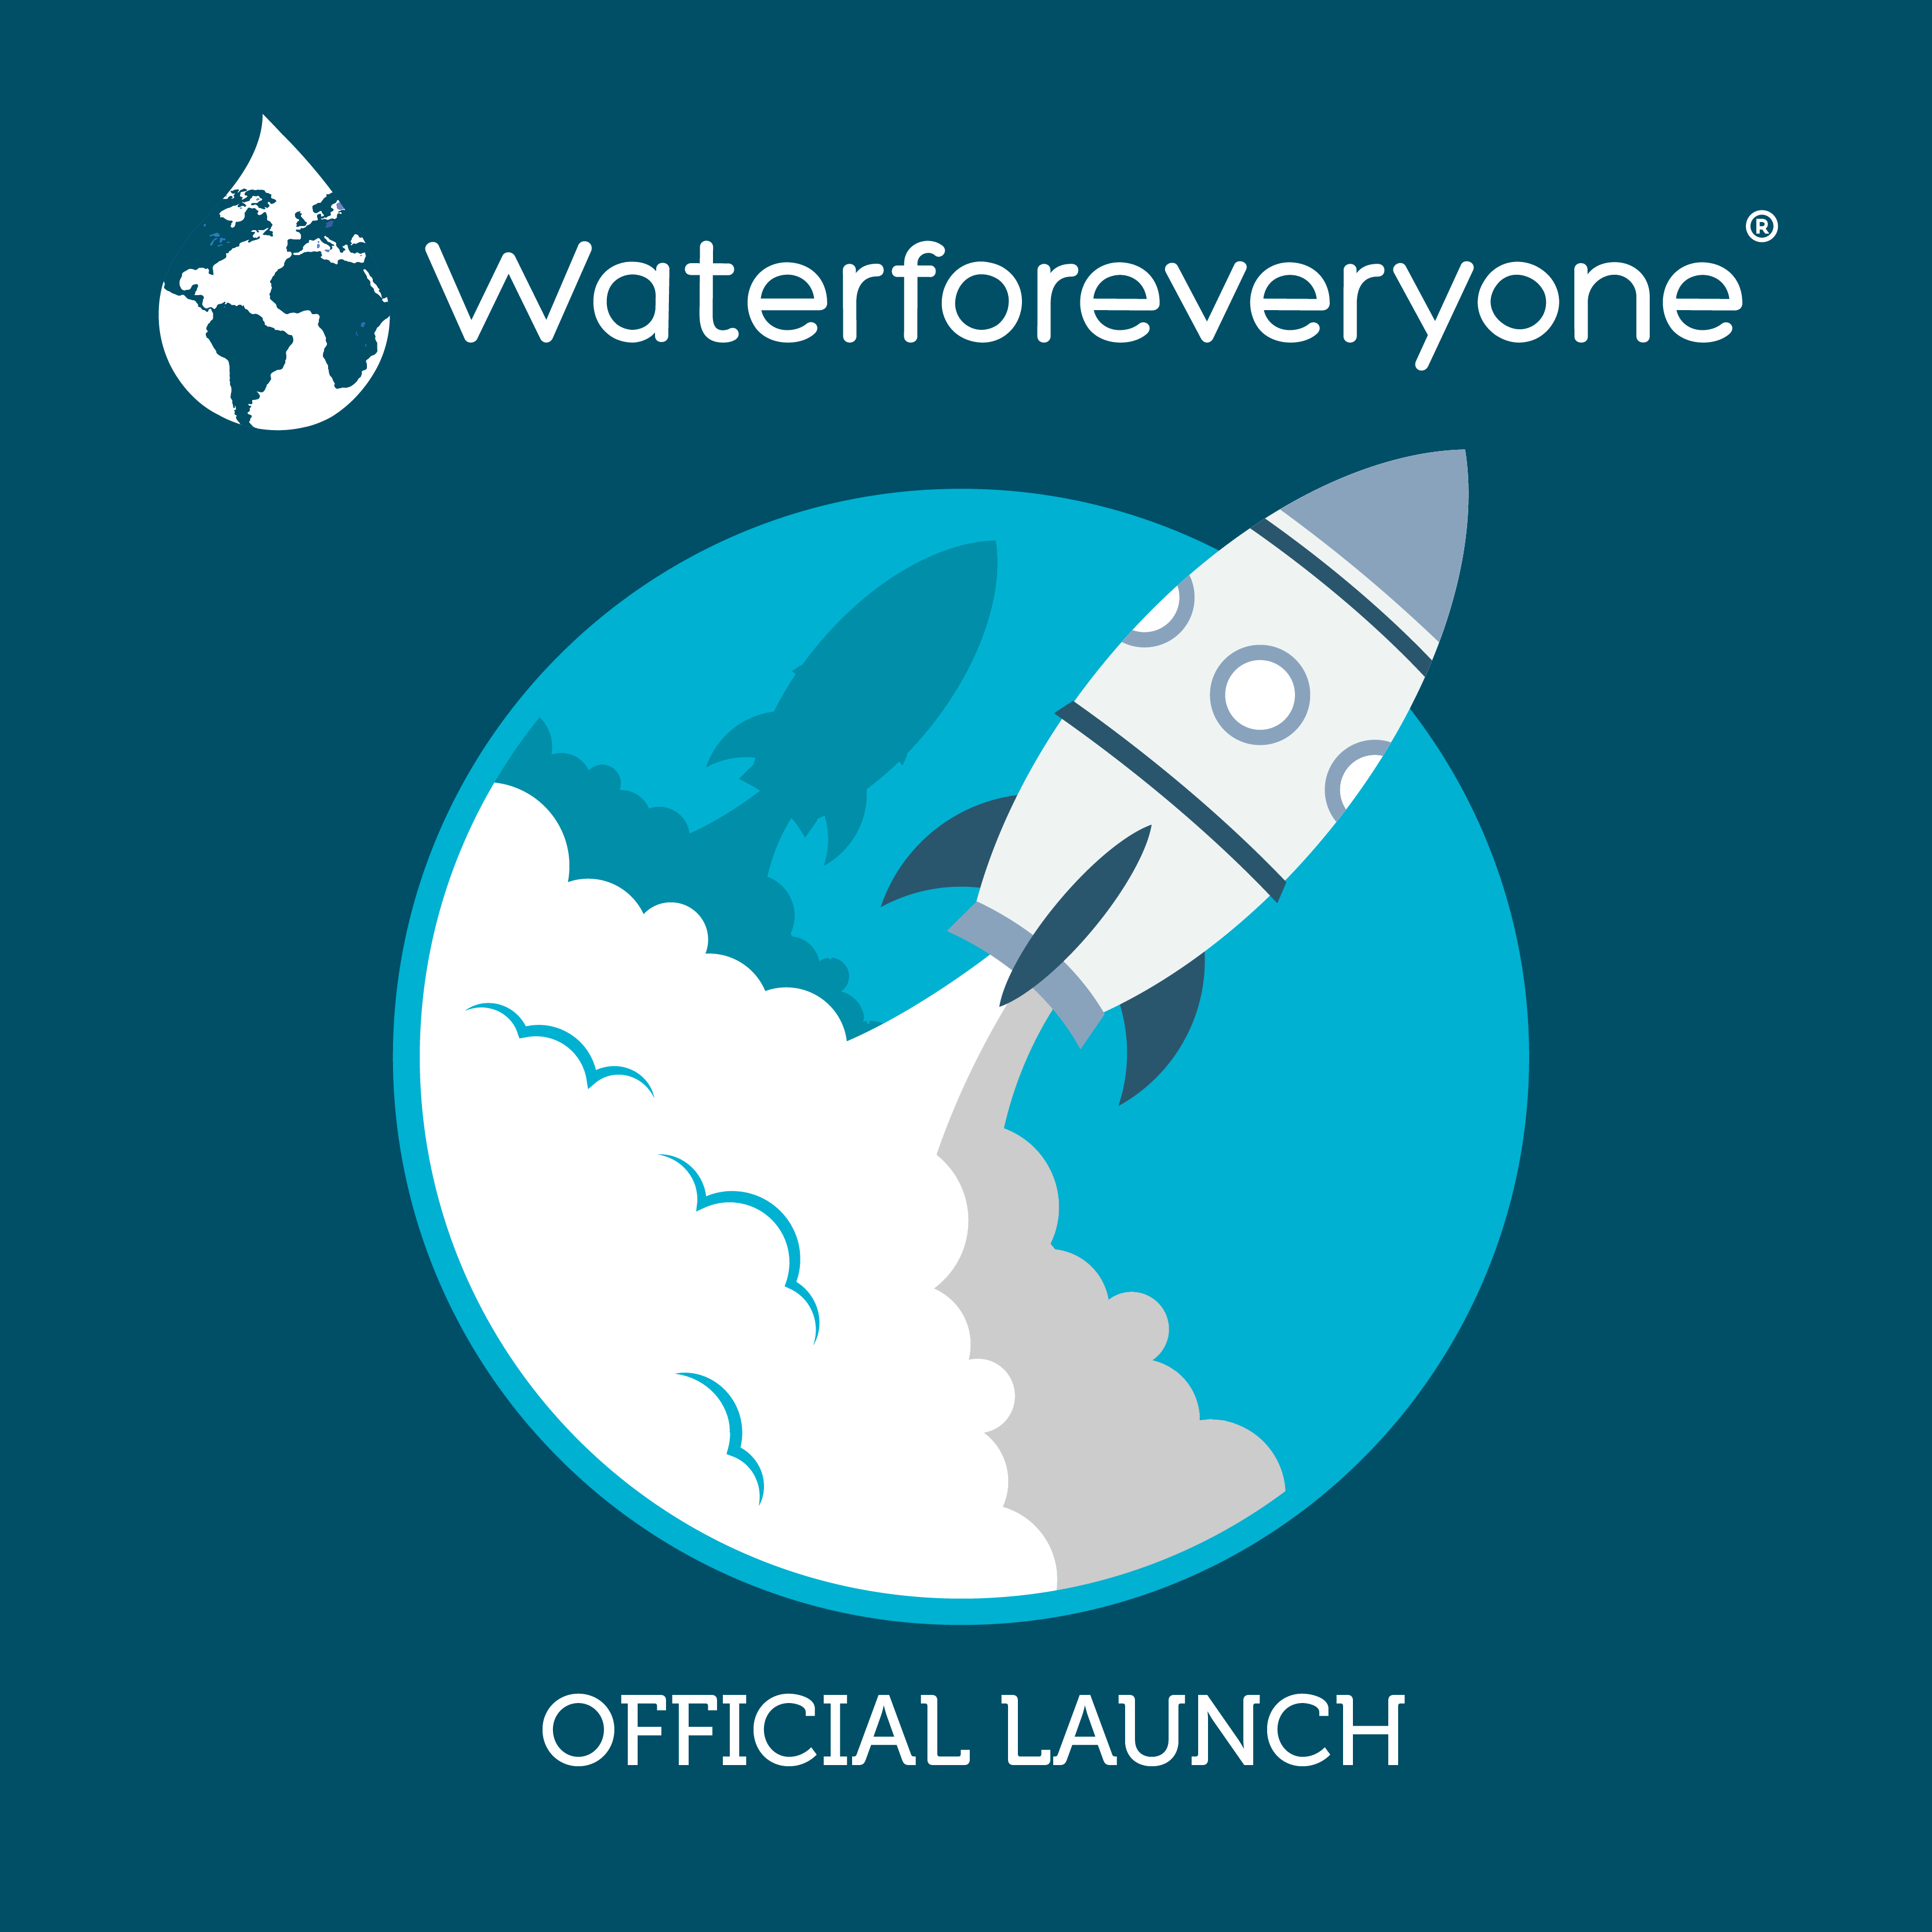 Official Launch of Waterforeveryone